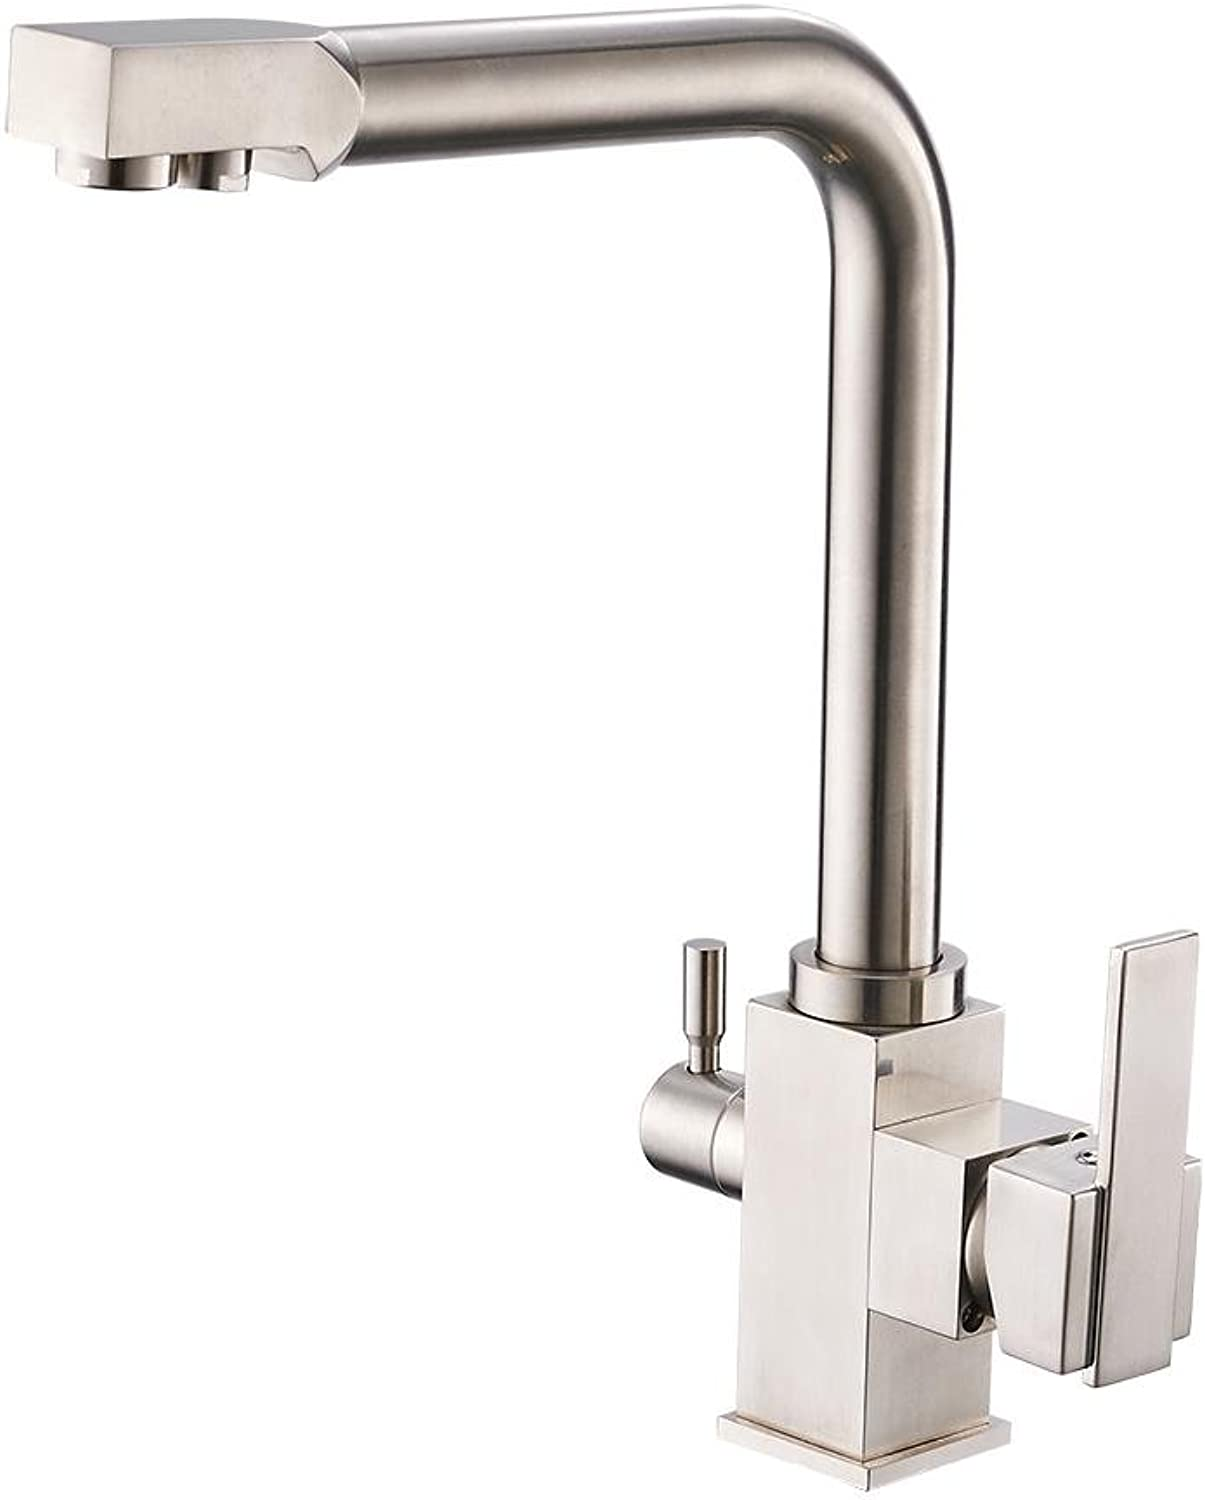 PLYY Kitchen Faucet Water Purification Features filter Construction Double Handle Single Hole Brass Sink Mixer Tap 360 Degrees redatable